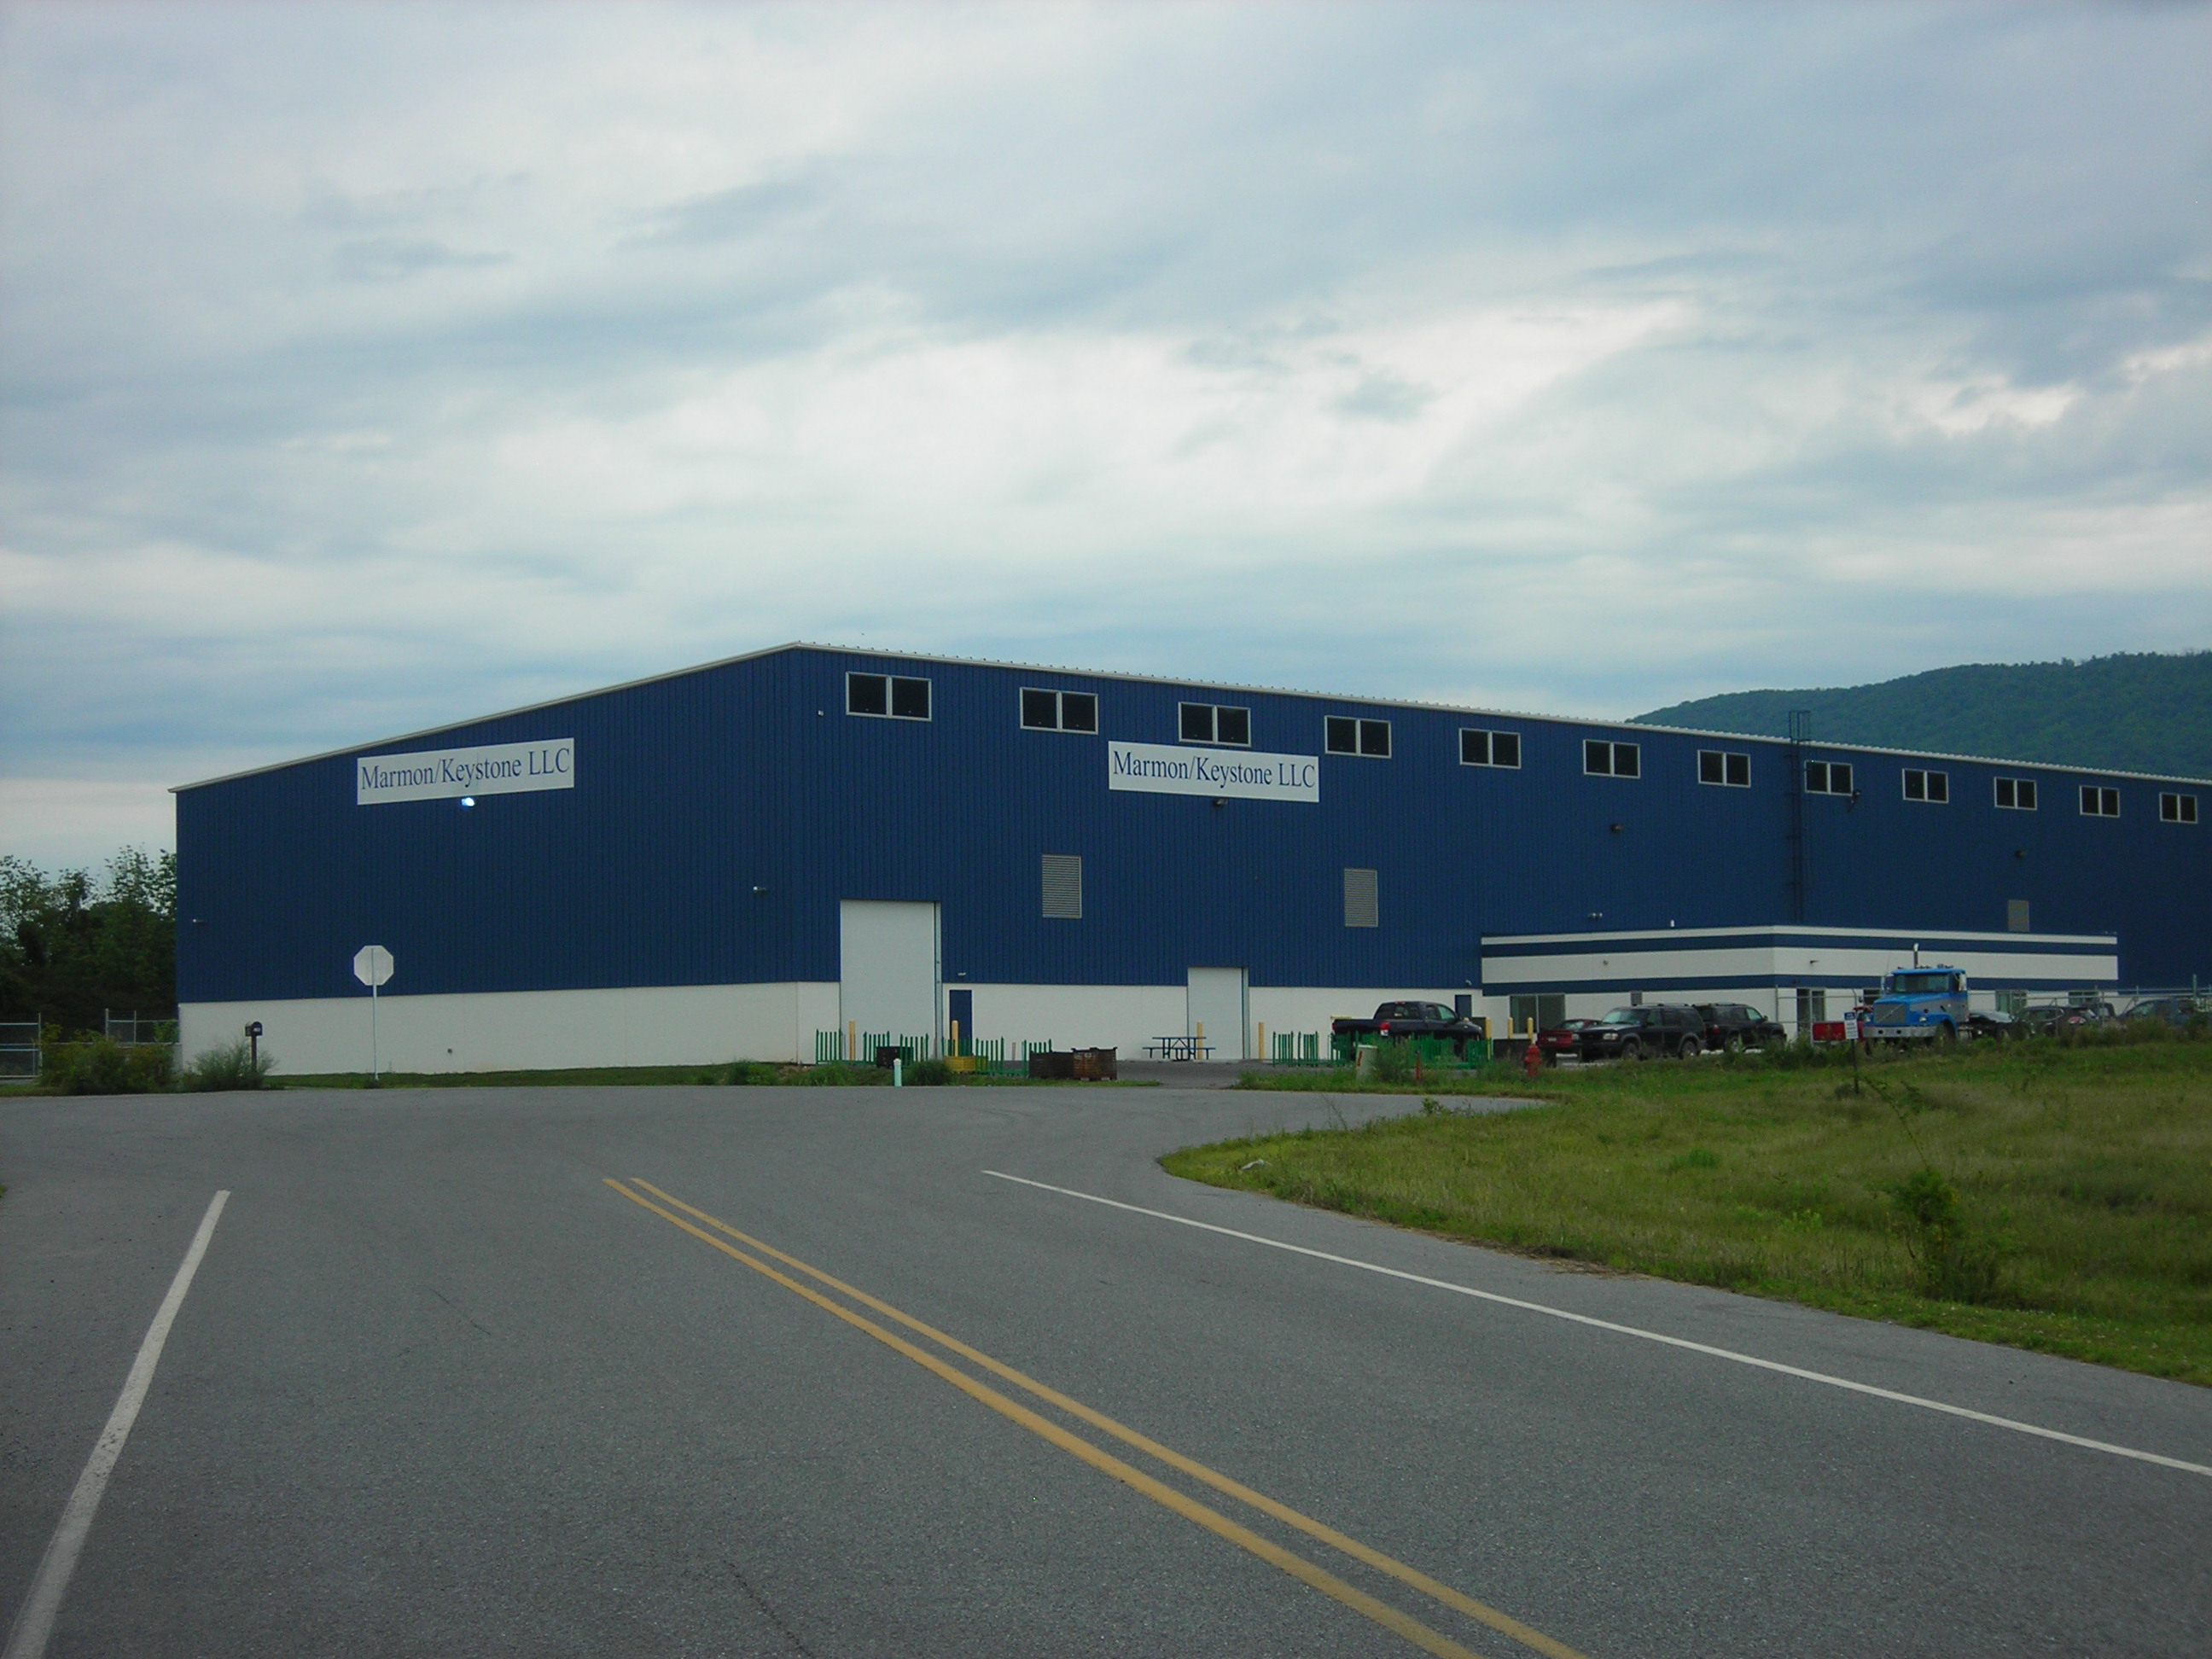 Marmon-Keystone LLC, a manufacturing industry located on Lot 17